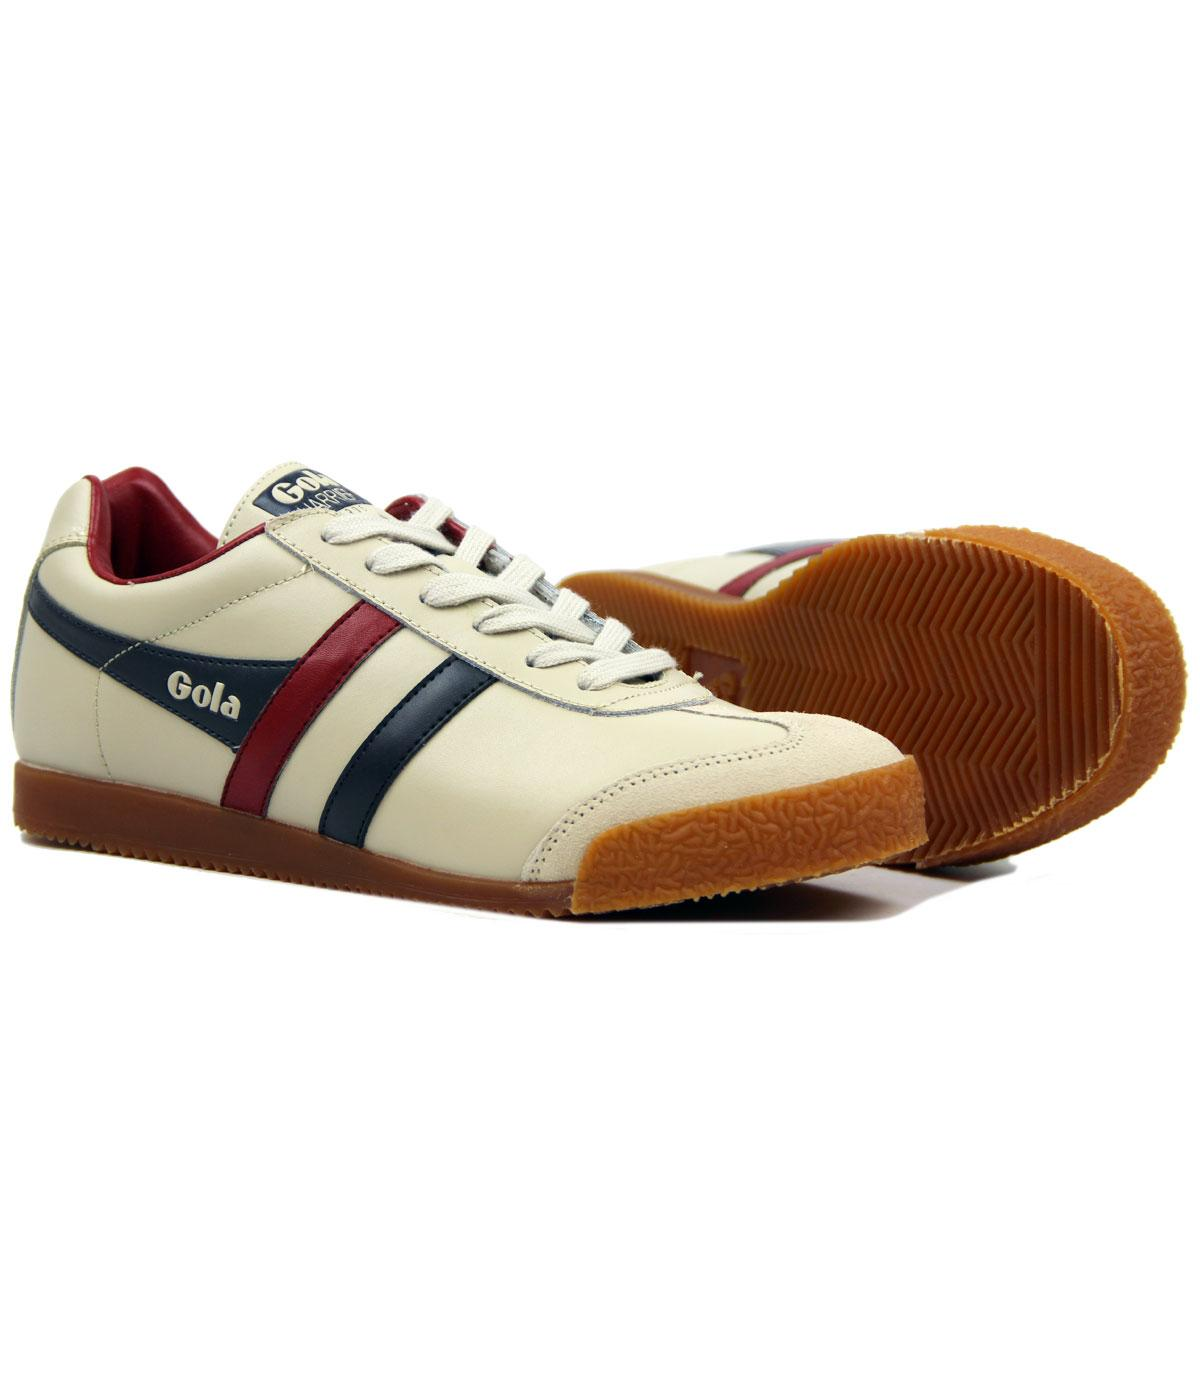 Retro 70s Indie Leather Suede Trainers